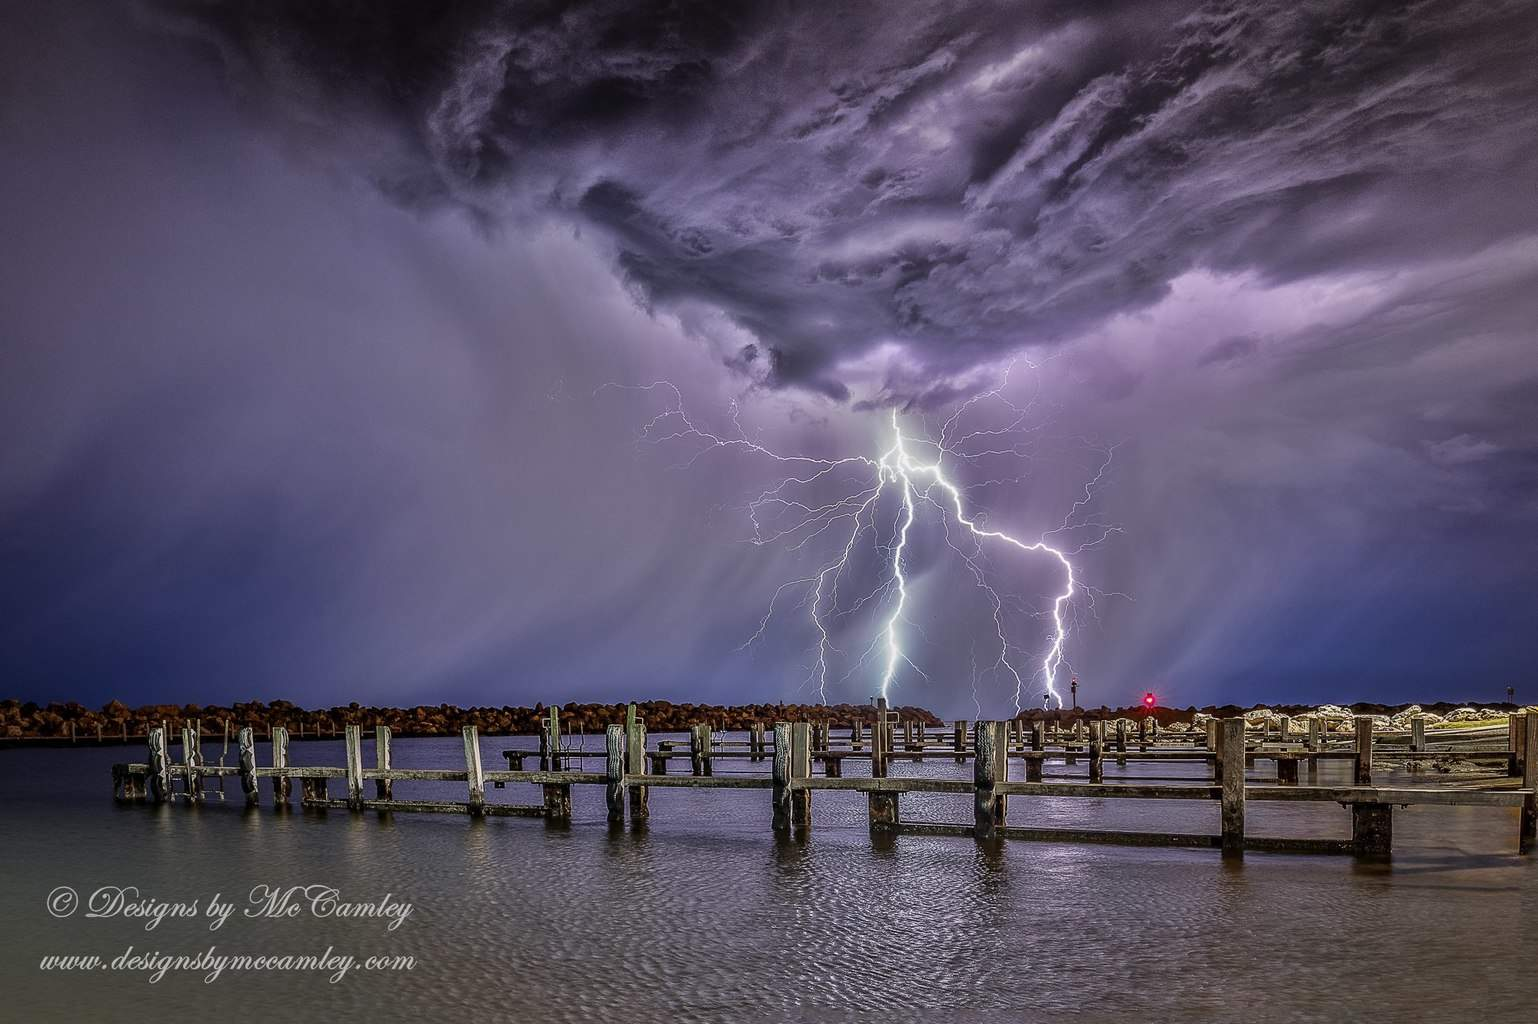 27th November 2014 3:48am Ocean Reef marina in Western Australia. Had I known the dark clouds above me looked like that I might not have been brave/silly enough to get this shot. My first half decent lightning shot.